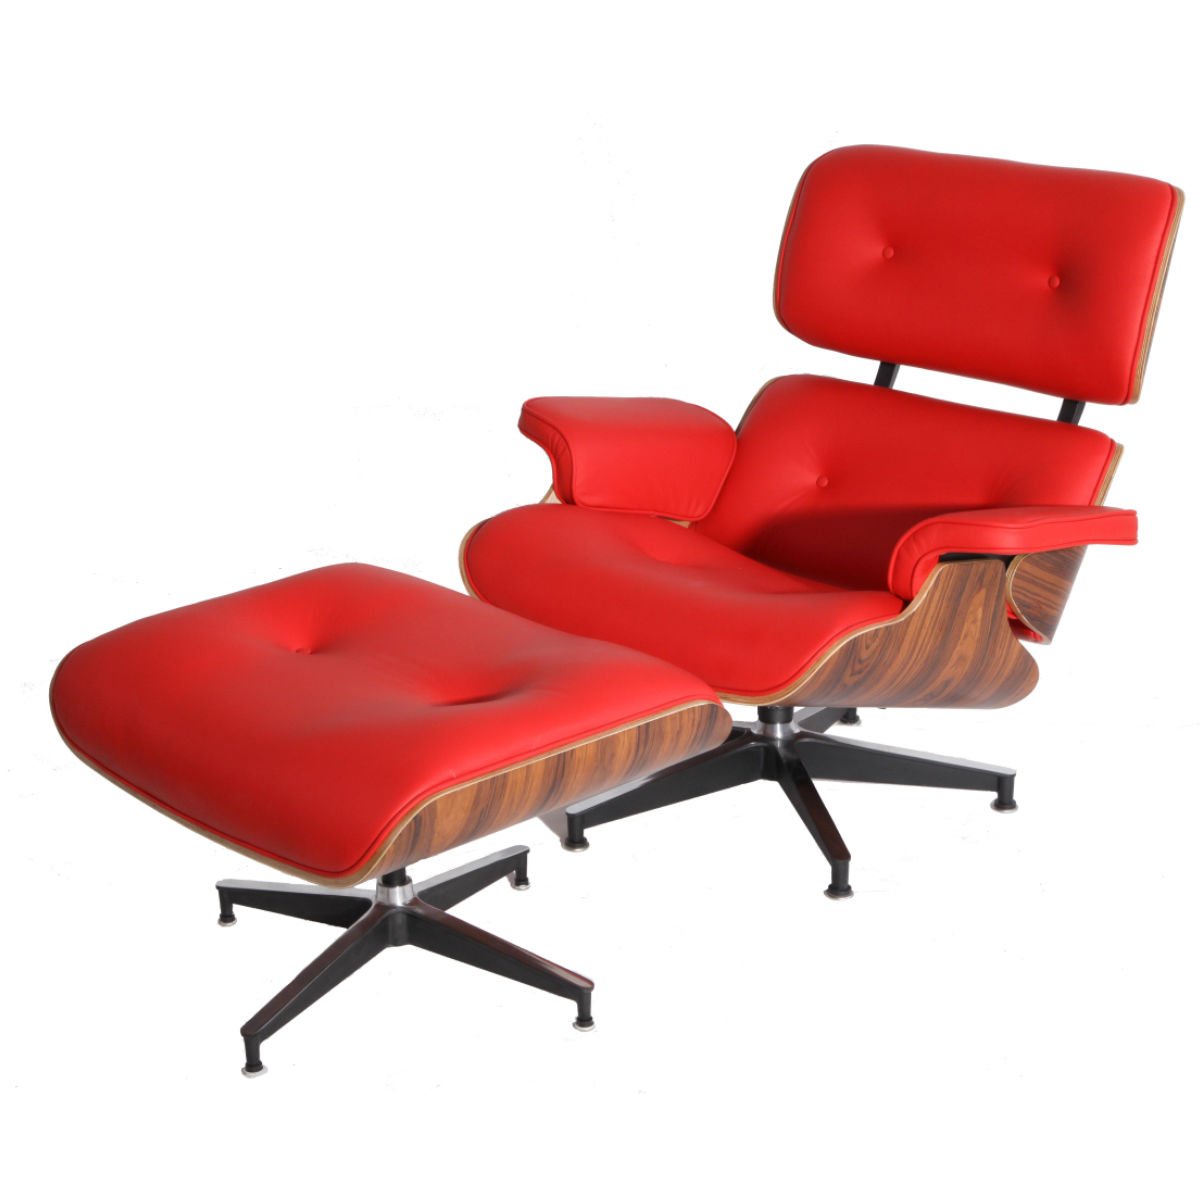 #70 - Mid-Century Classic Design Palisander Lounge Chair and Ottoman Set in Red Top Grain Leather